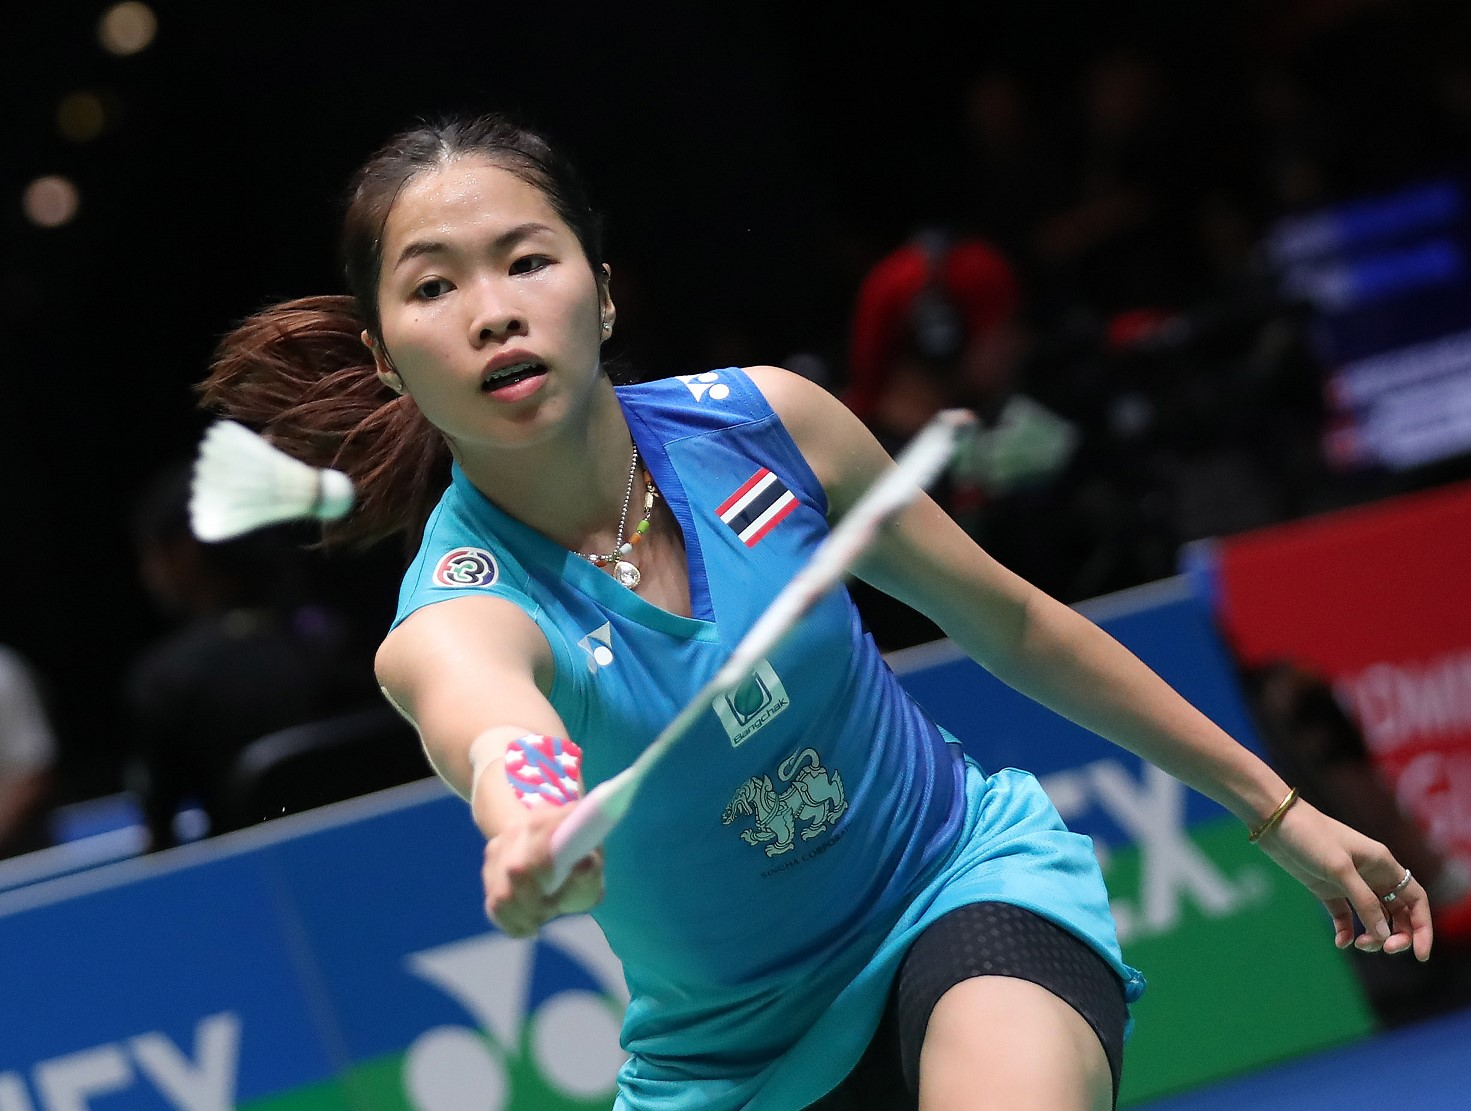 All England 2016 - Day 3 - Ratchanok Intanon of Thailand